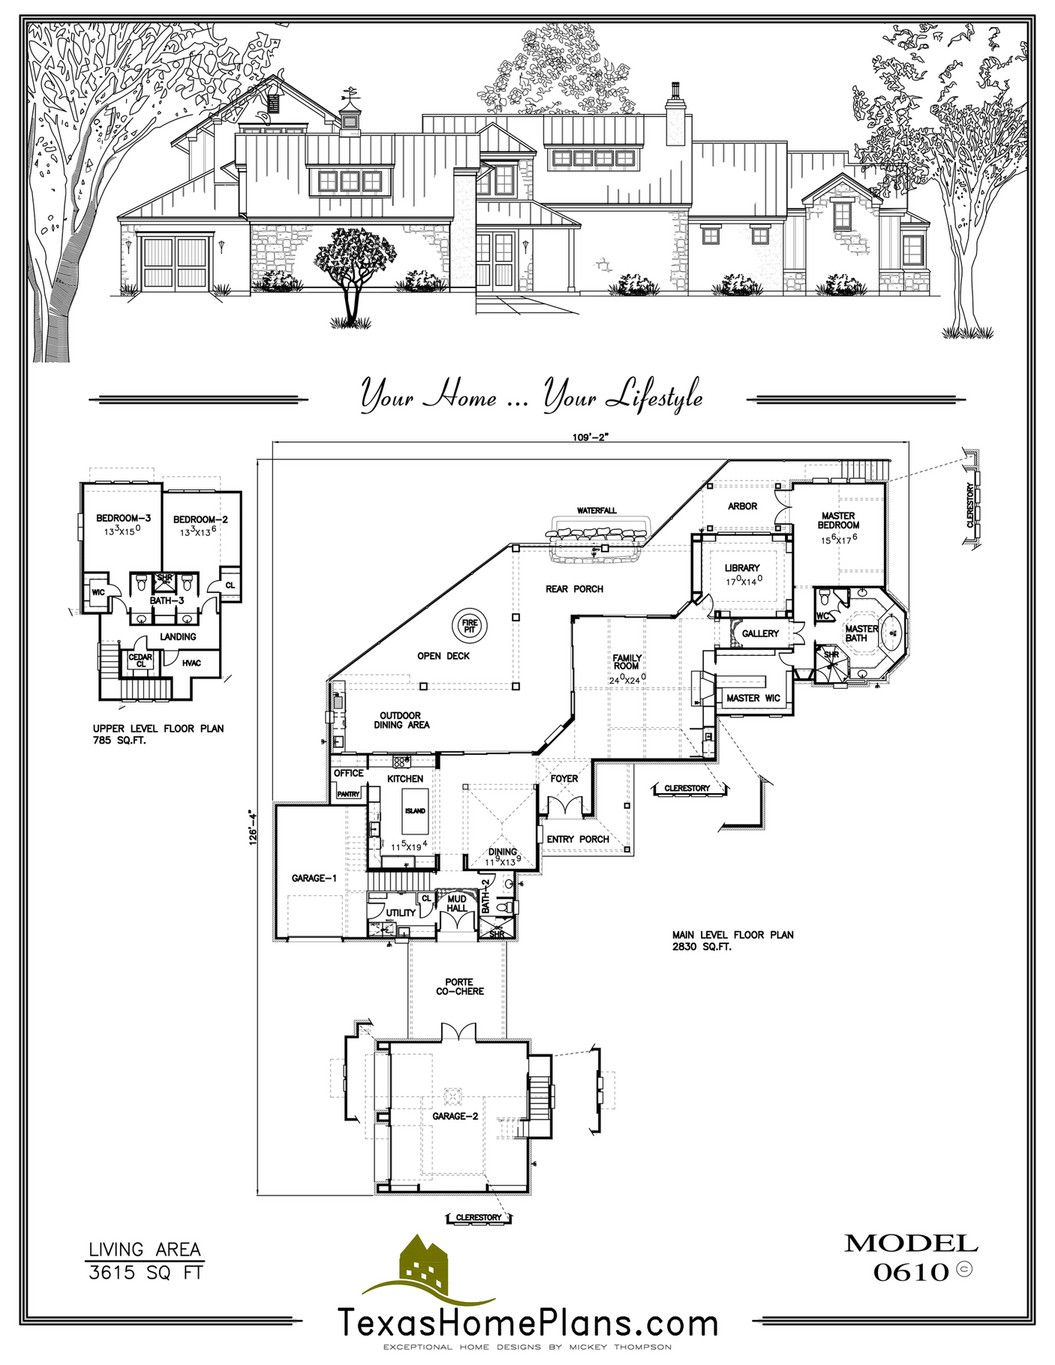 Texas Home Plans Texas Mission Homes Page 30 31 Texas Homes House Plans Mission